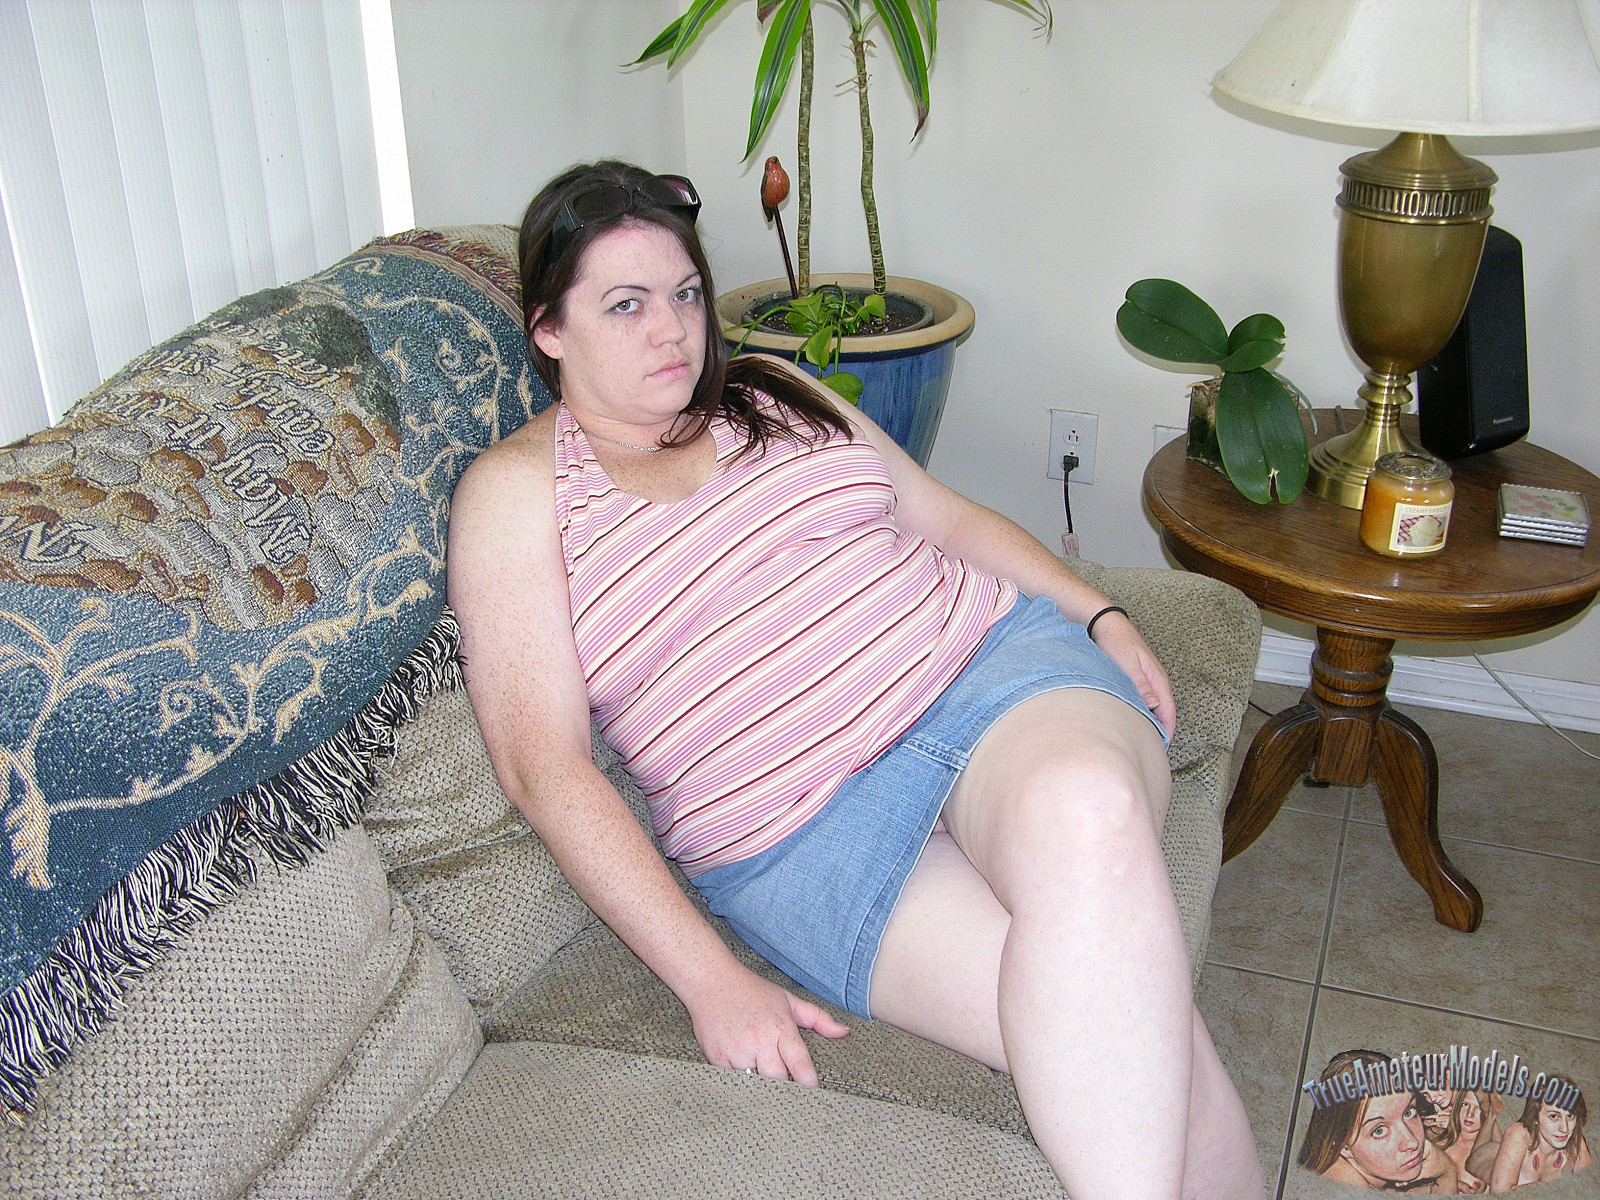 Average looking amature chubby porn were